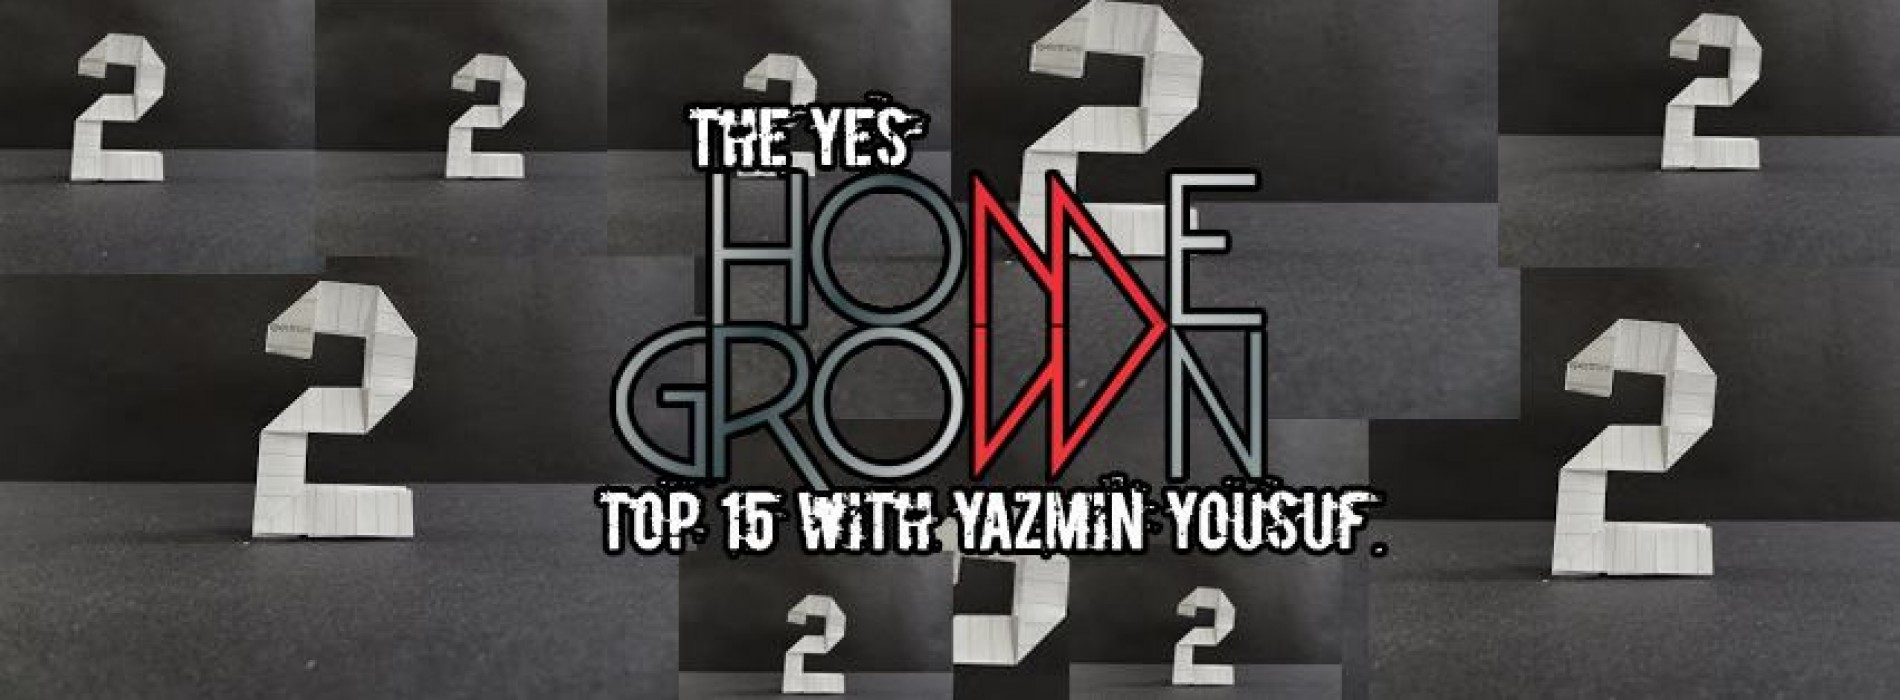 The YES Home Grown Top 15: The Big 2!